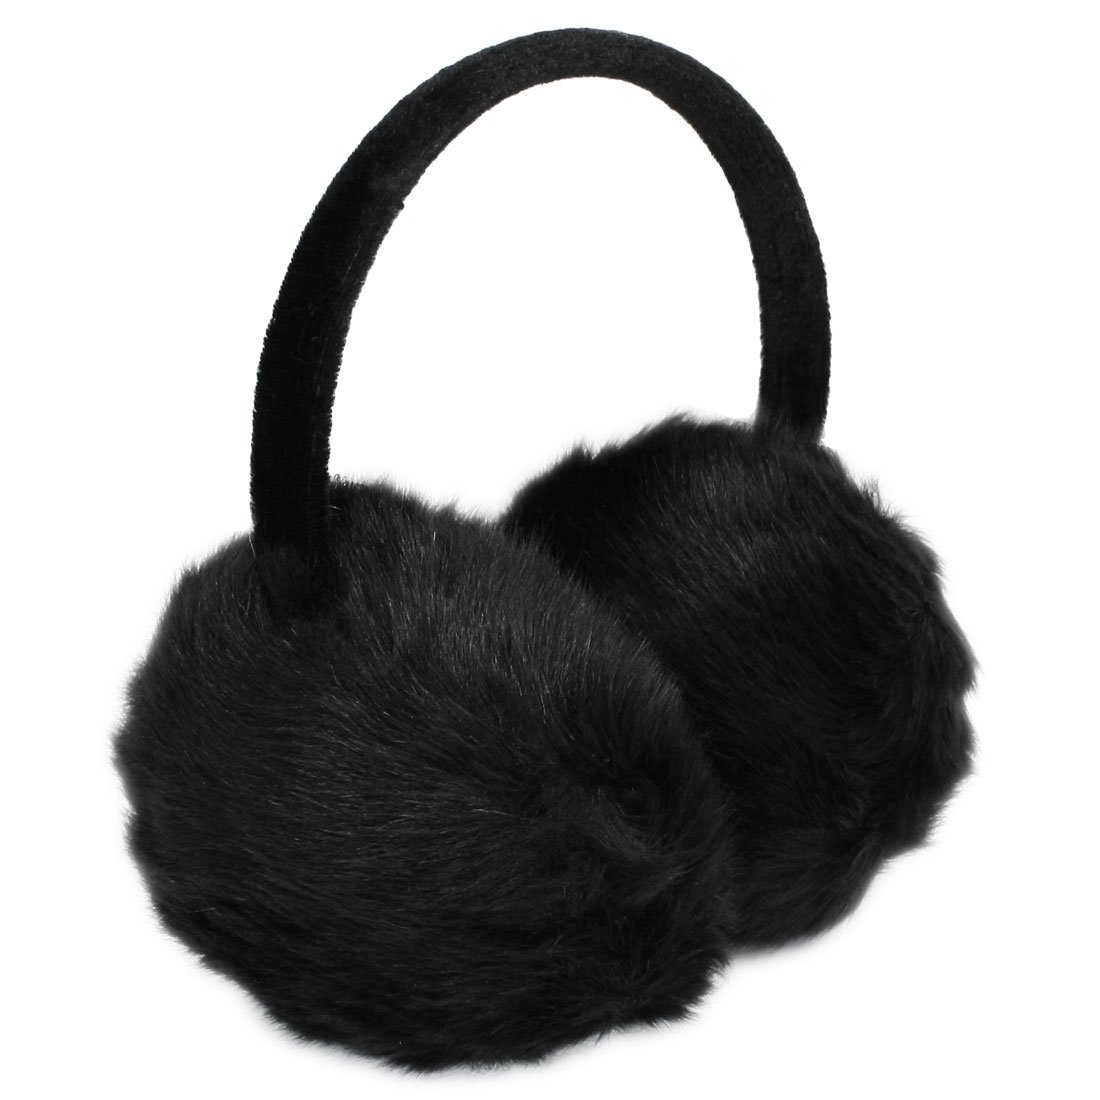 h1 lady woman headband black faux fur winter ear cover. Black Bedroom Furniture Sets. Home Design Ideas